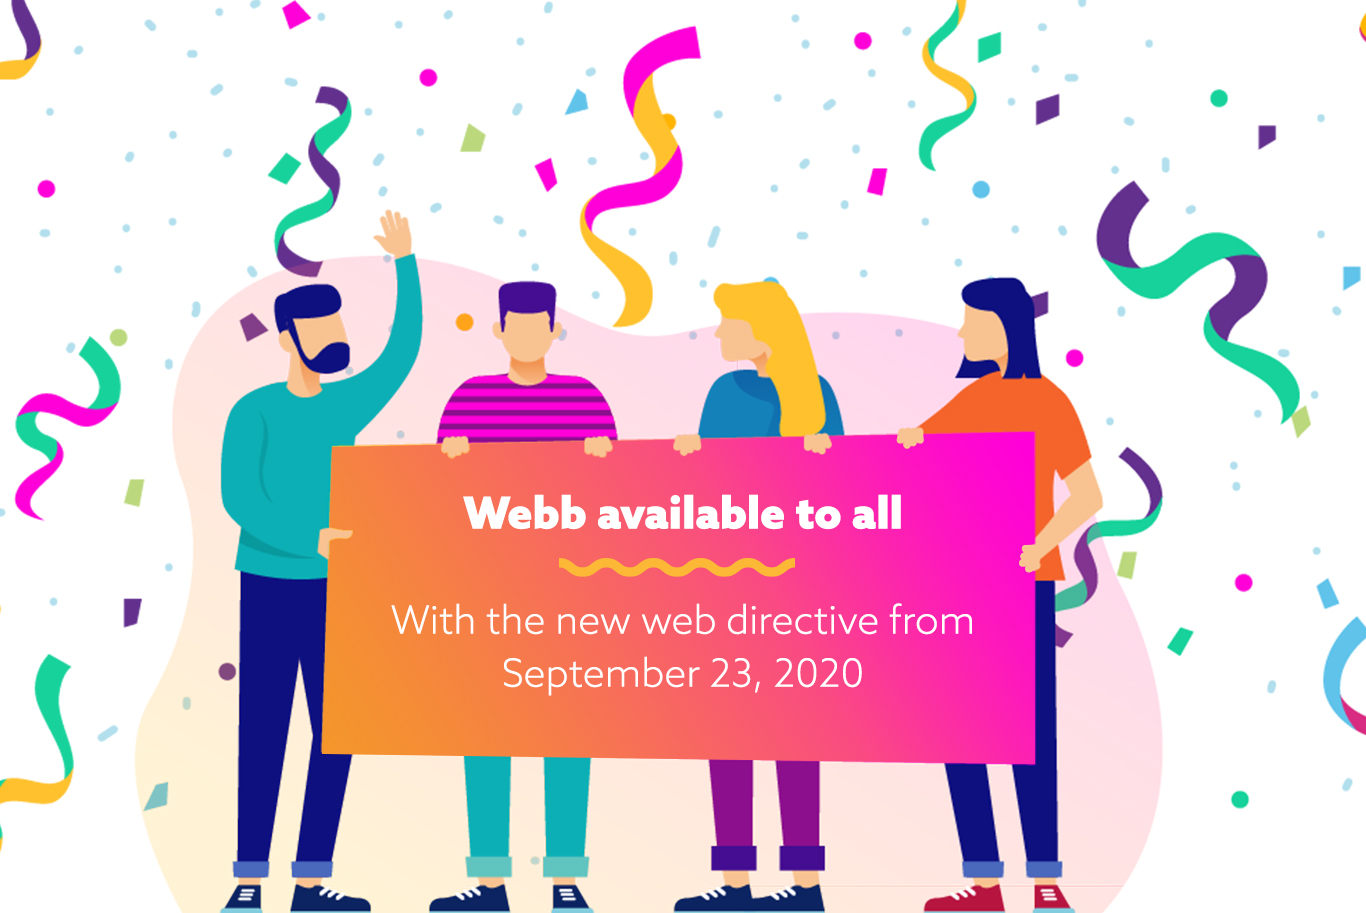 Webb available to all!